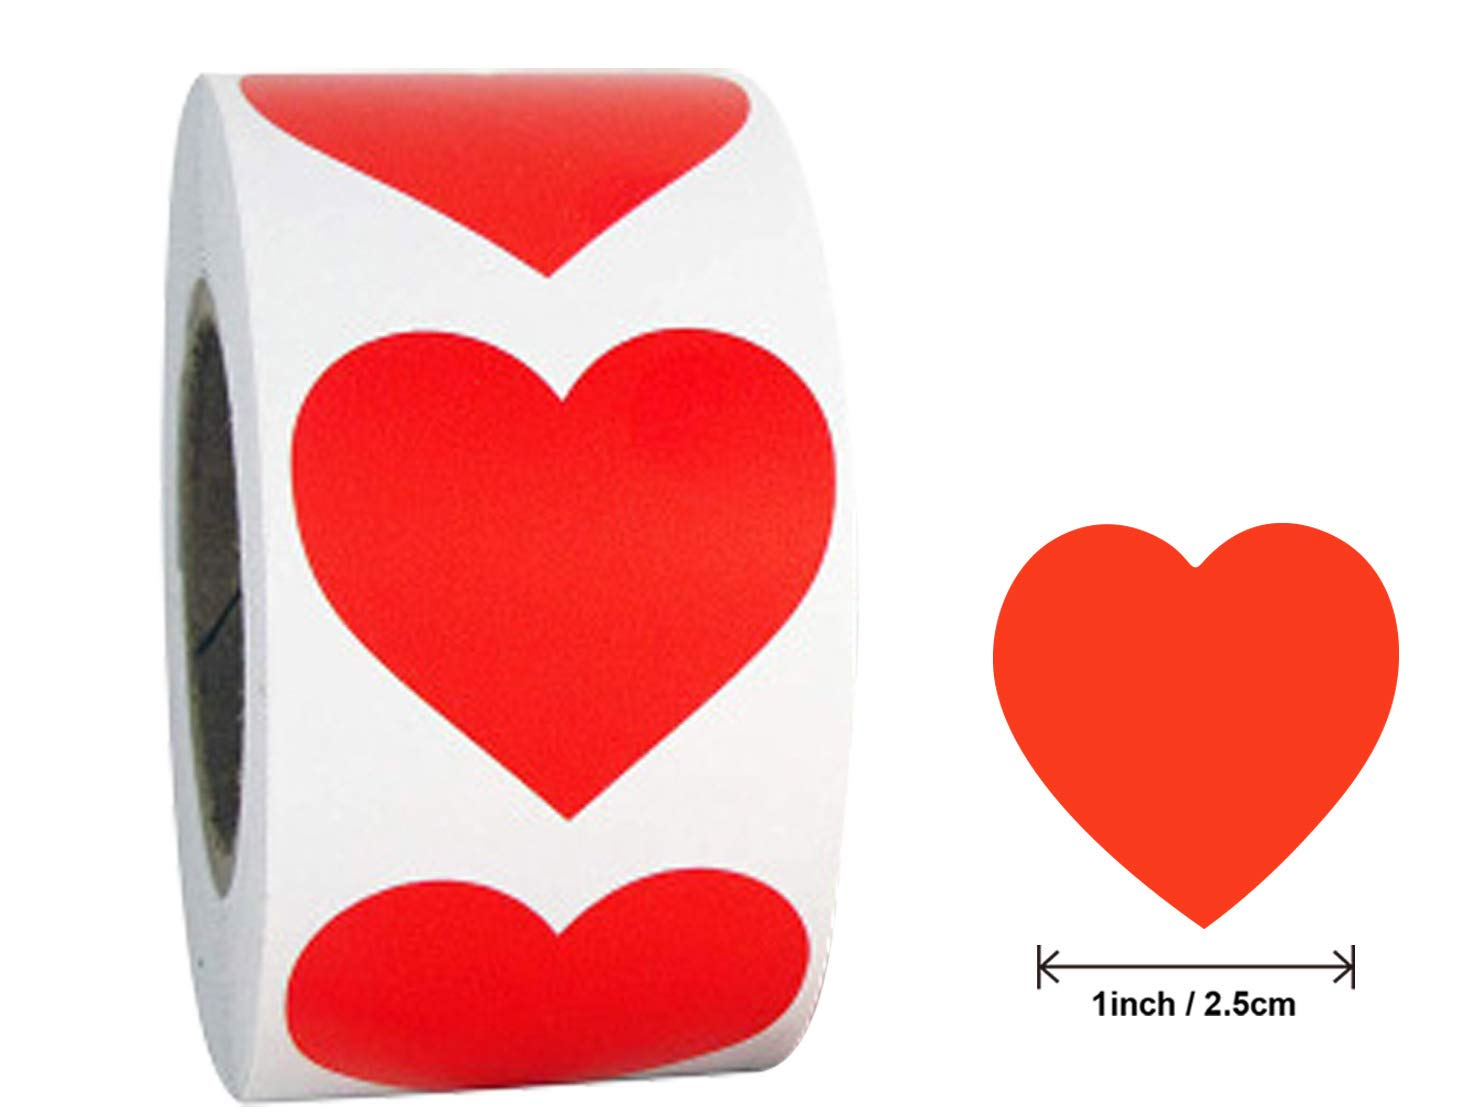 1 Heart Shape Stickers Roll Sticker Labels for Packaging Sealing Total 500 Labels Per Roll